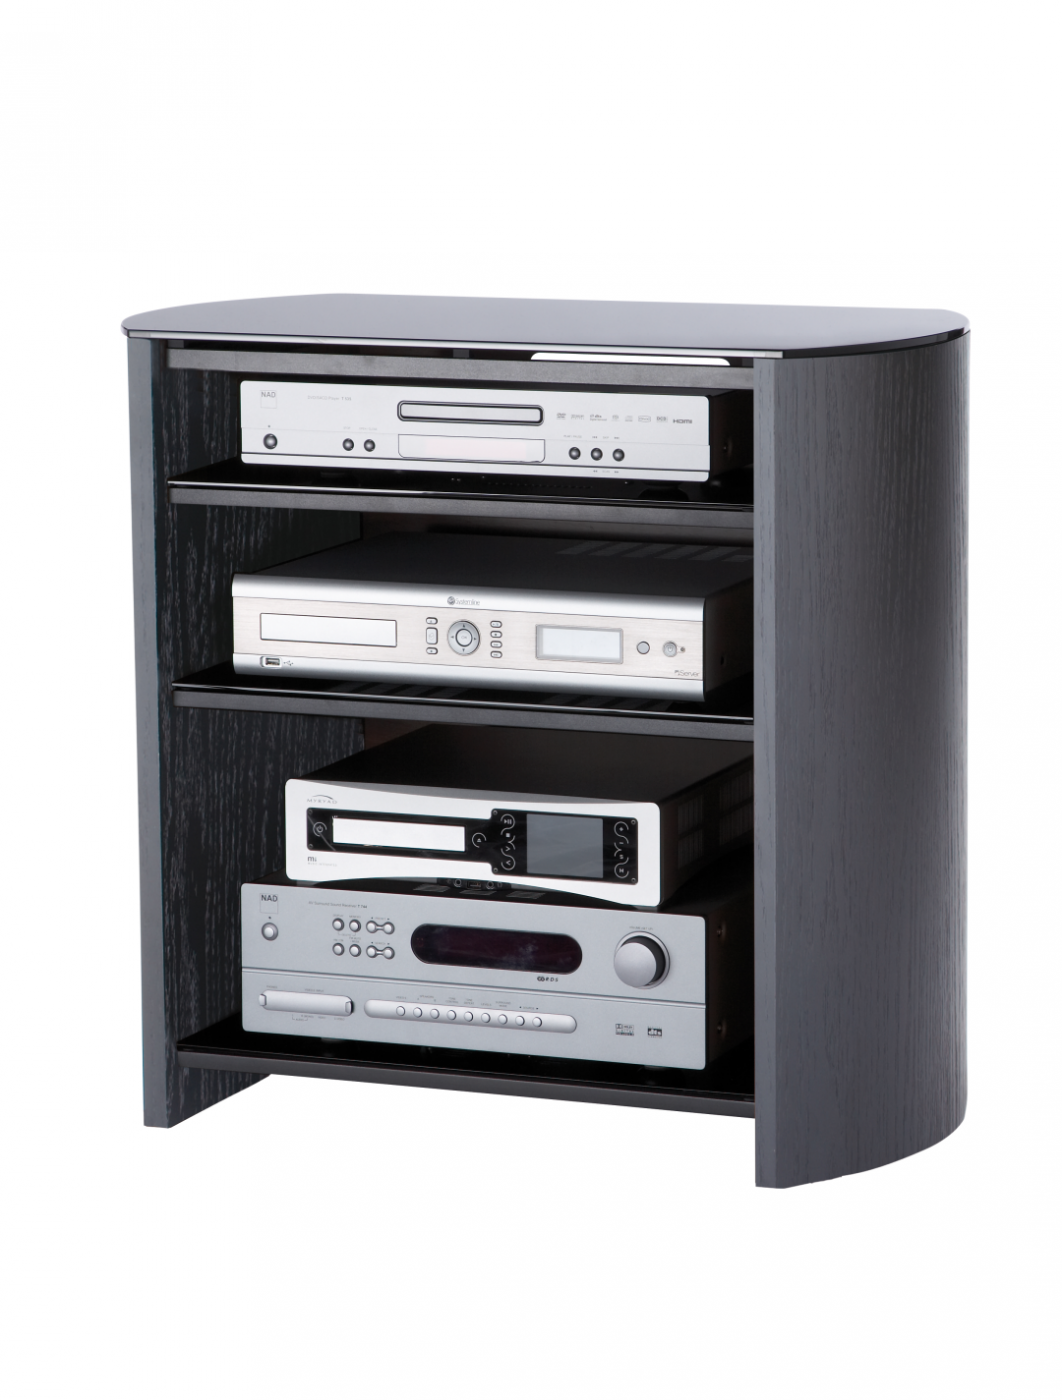 alphason fw750 4 bv b finewoods tv stand 121 tv mounts. Black Bedroom Furniture Sets. Home Design Ideas